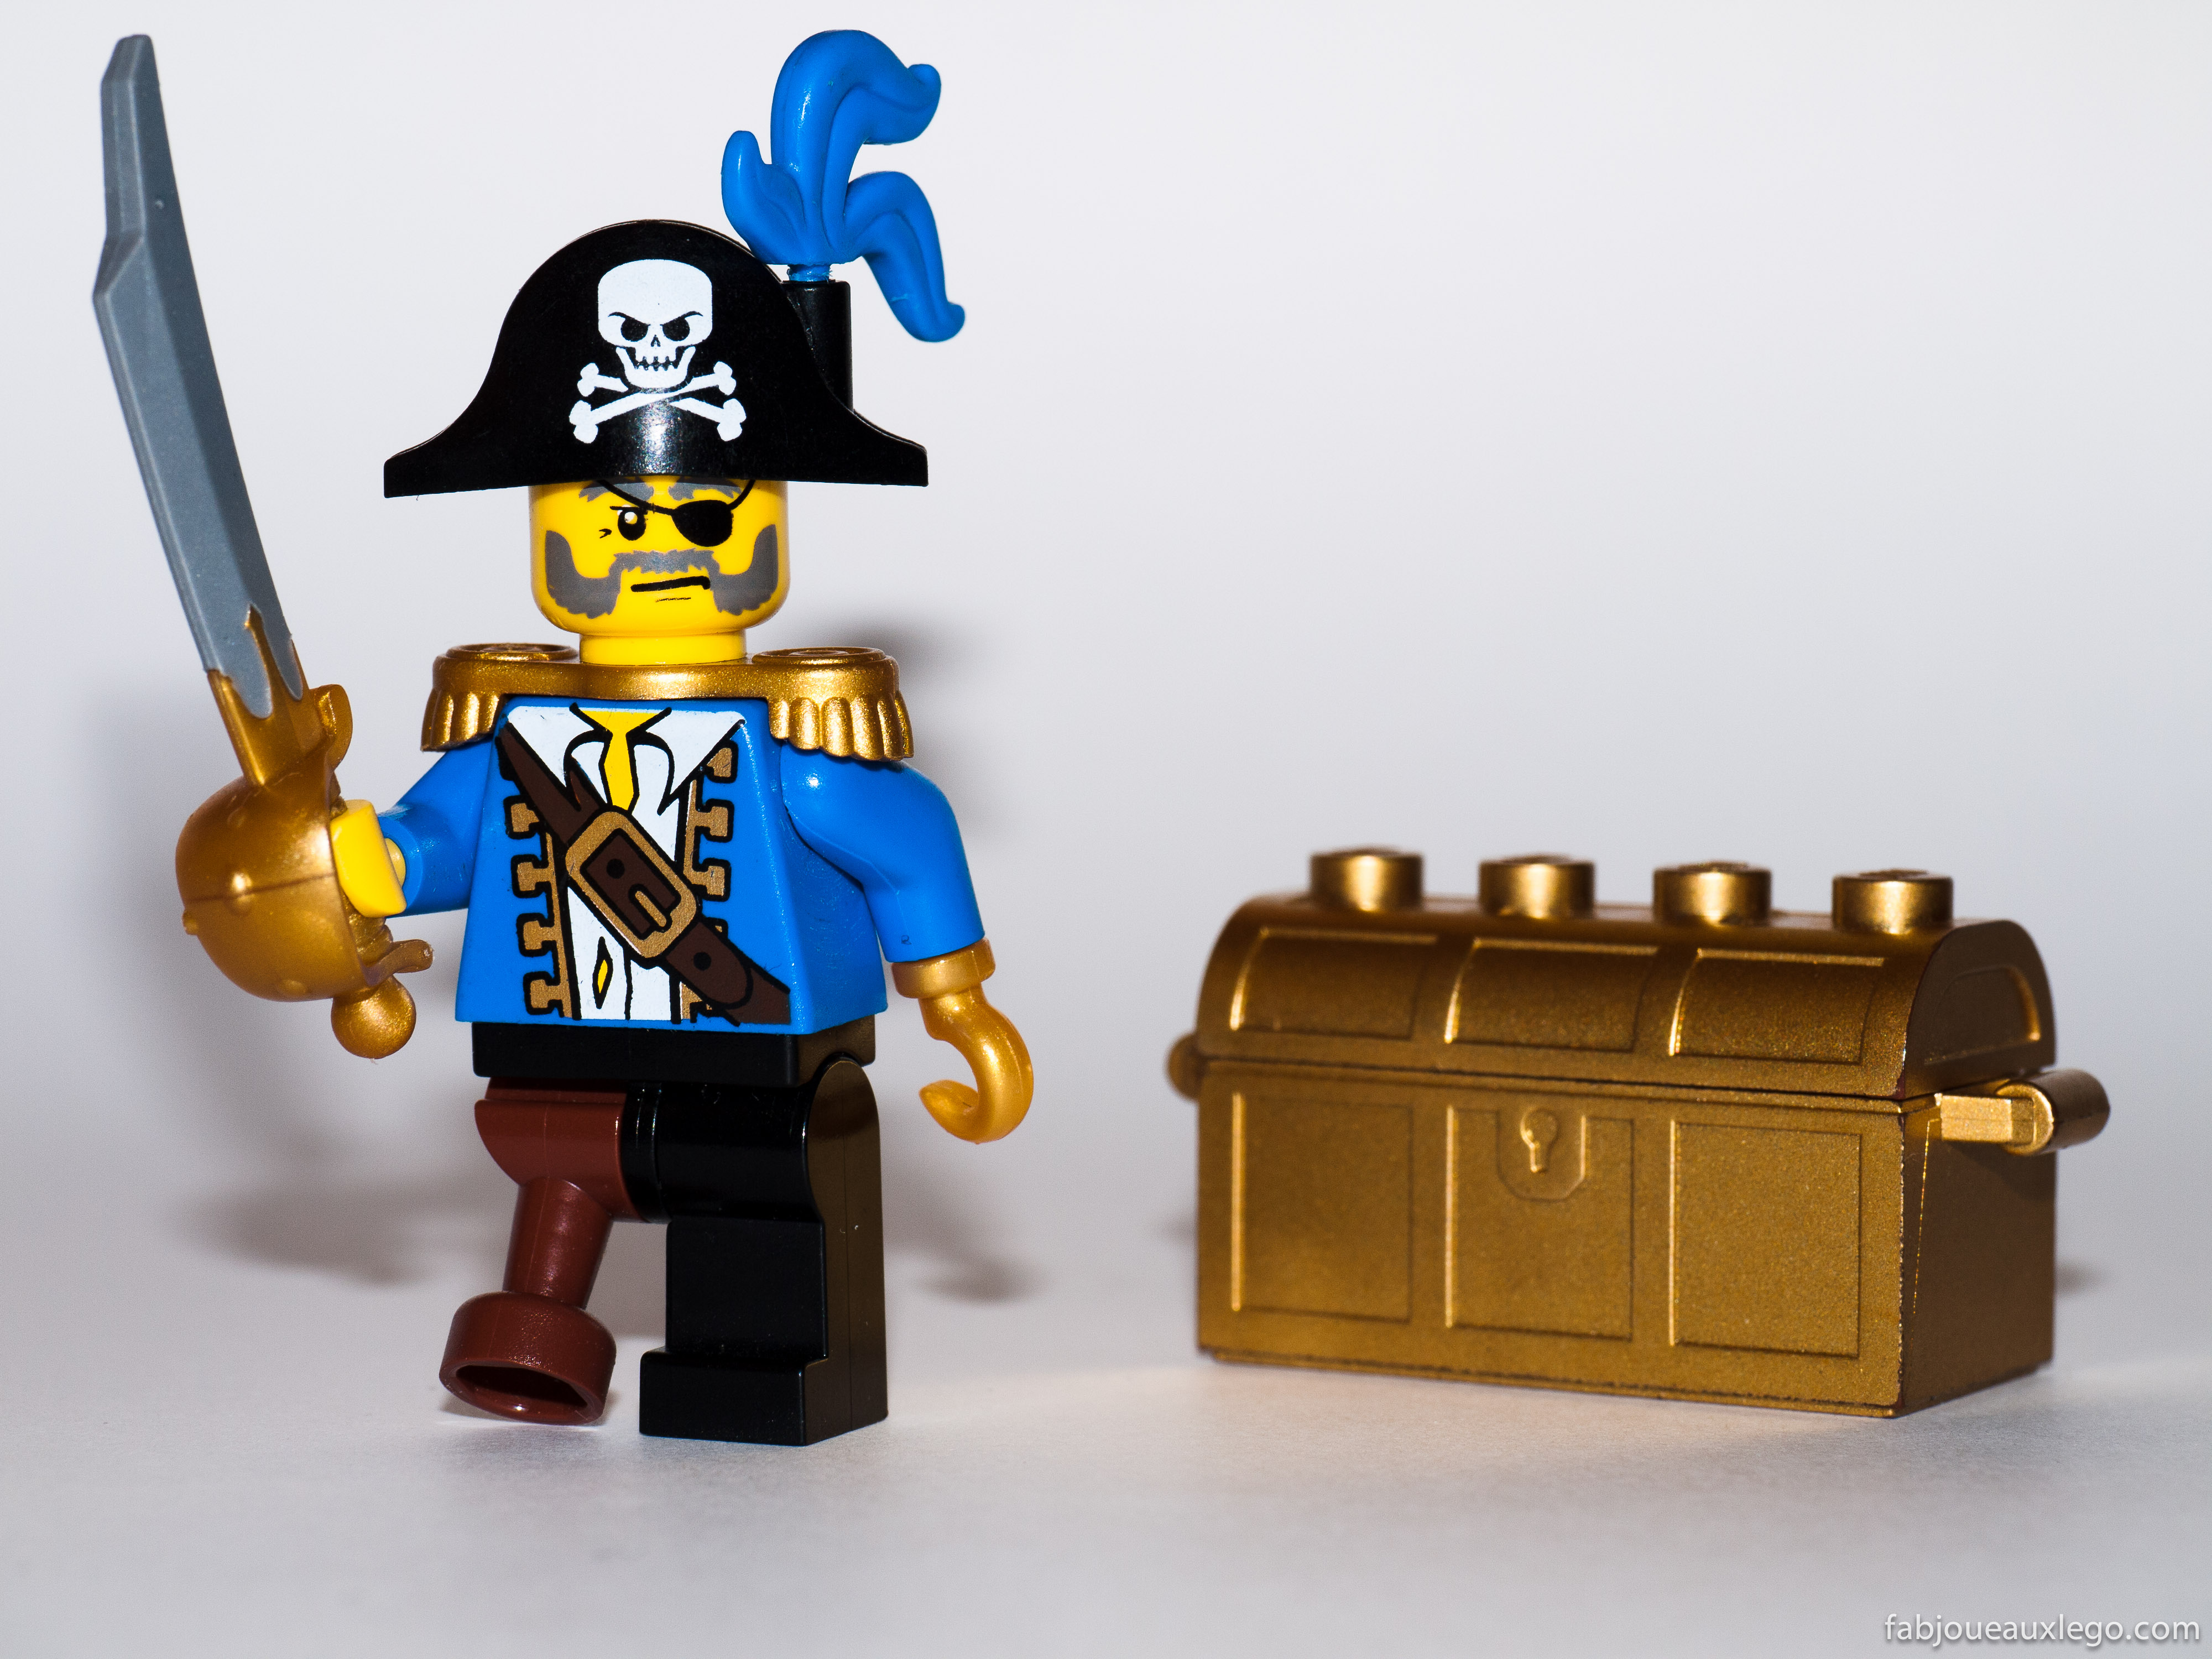 Toy Pirate Lego : Lego unveils minifigure in wheelchair after toylikeme